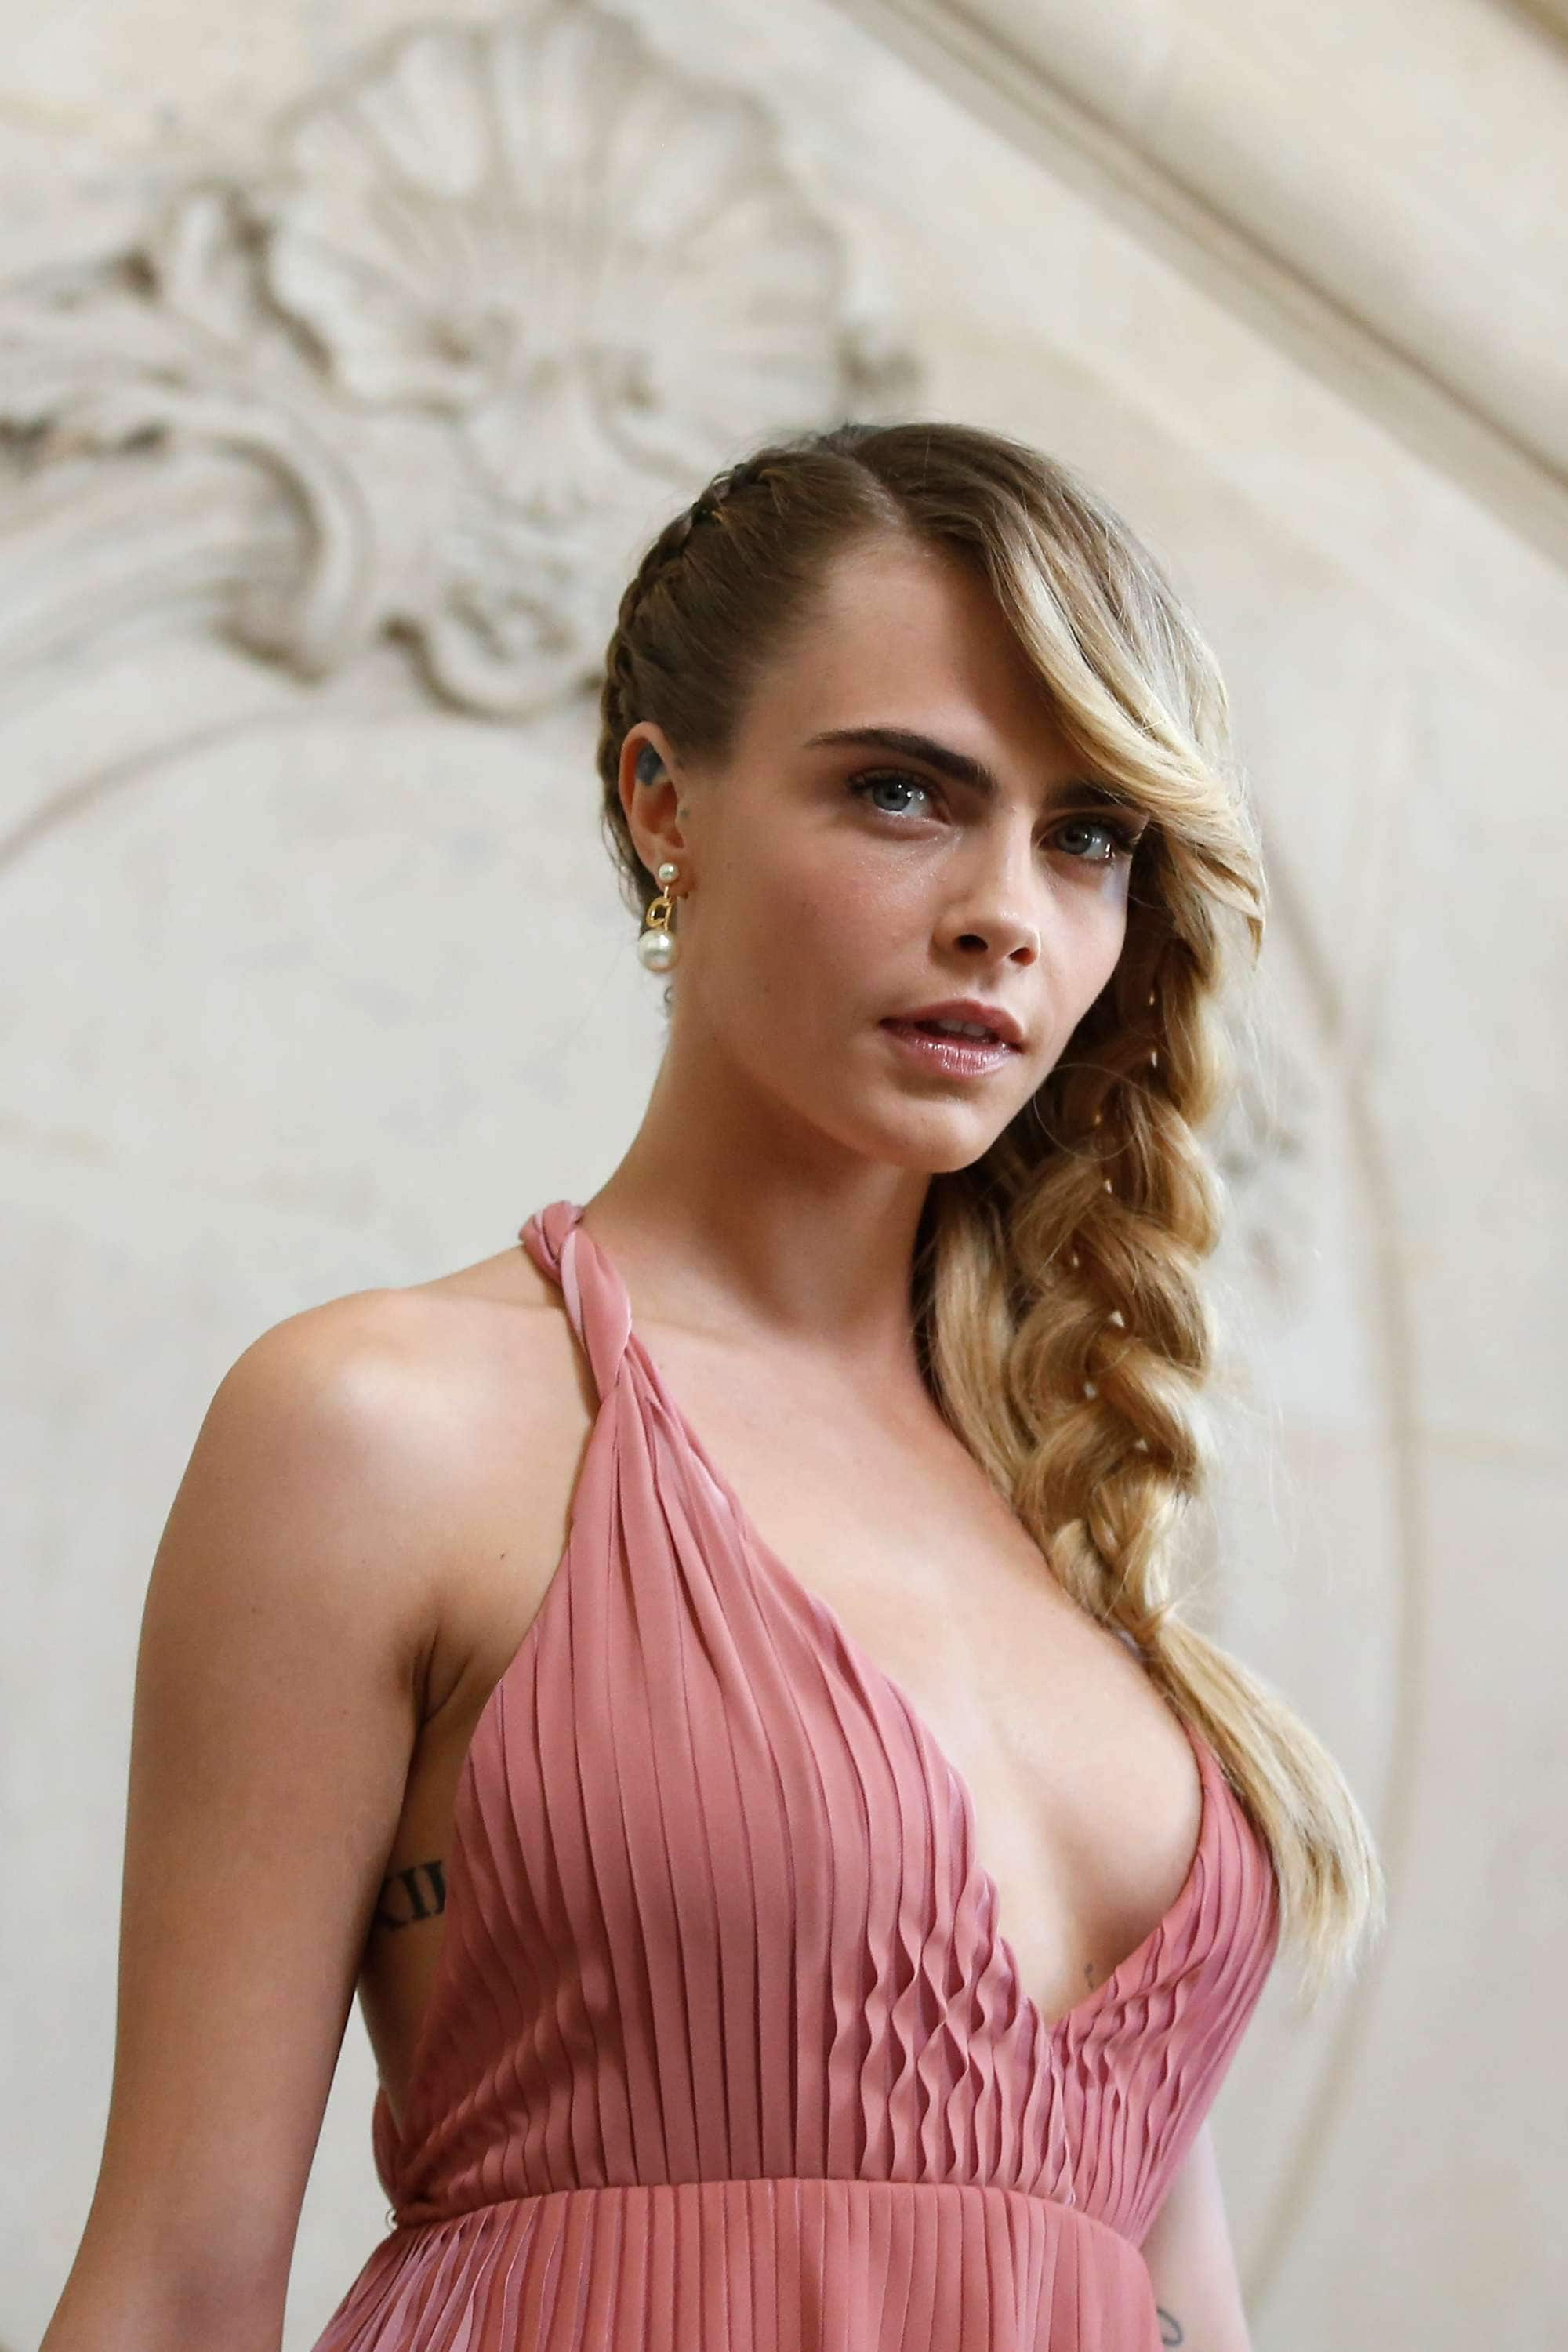 Cara Delevingne with blonde side braid